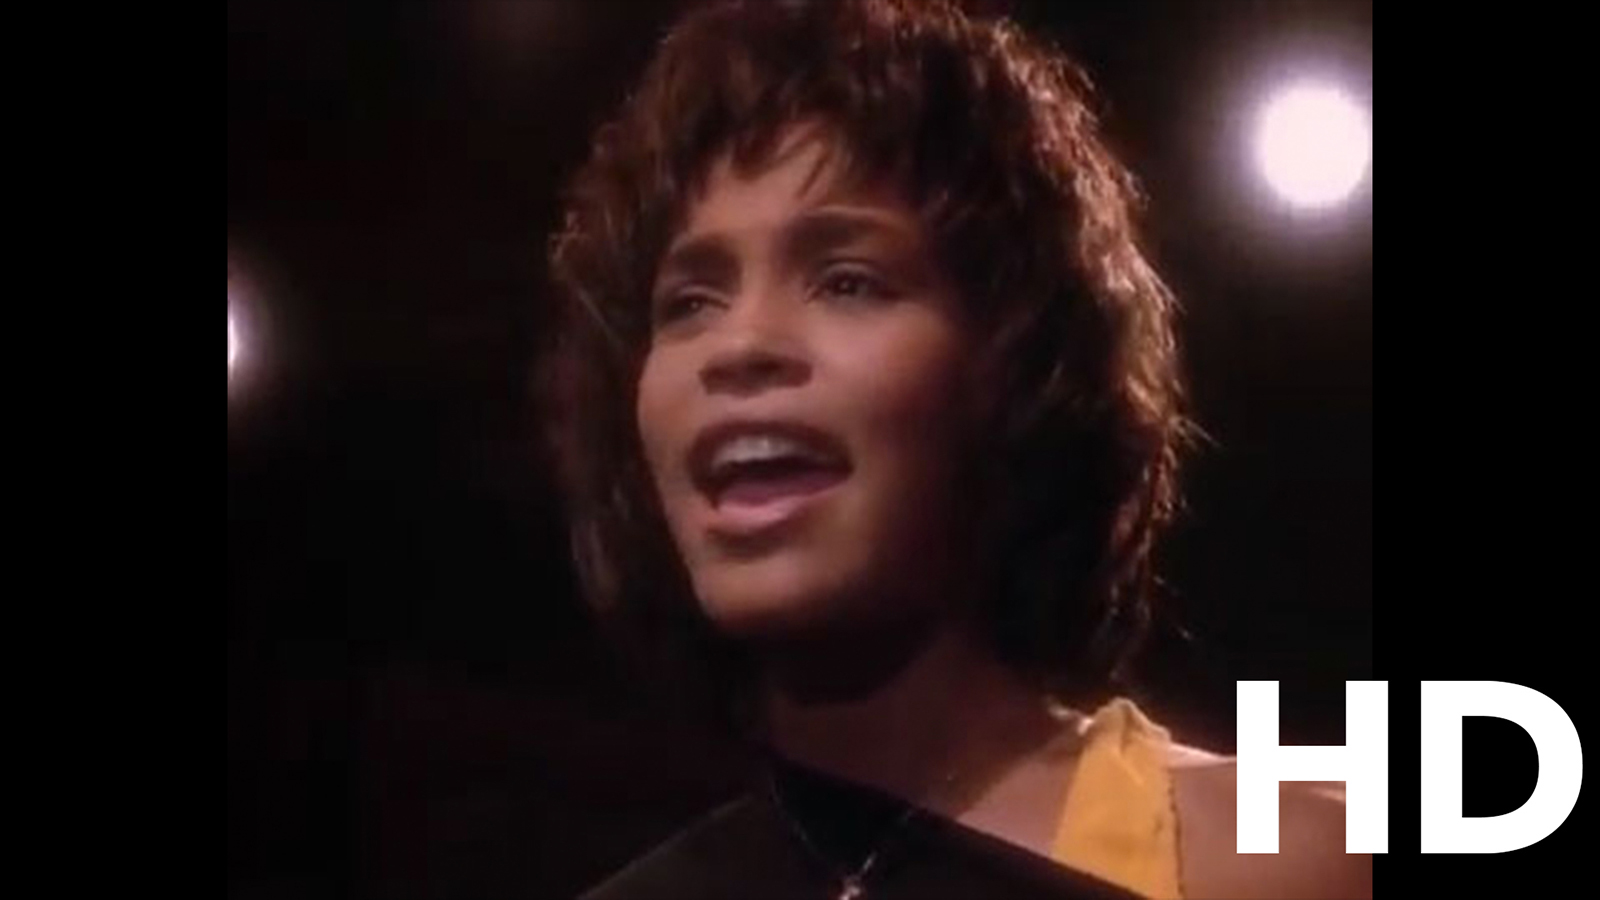 Whitney Houston Saving All My Love For You music video